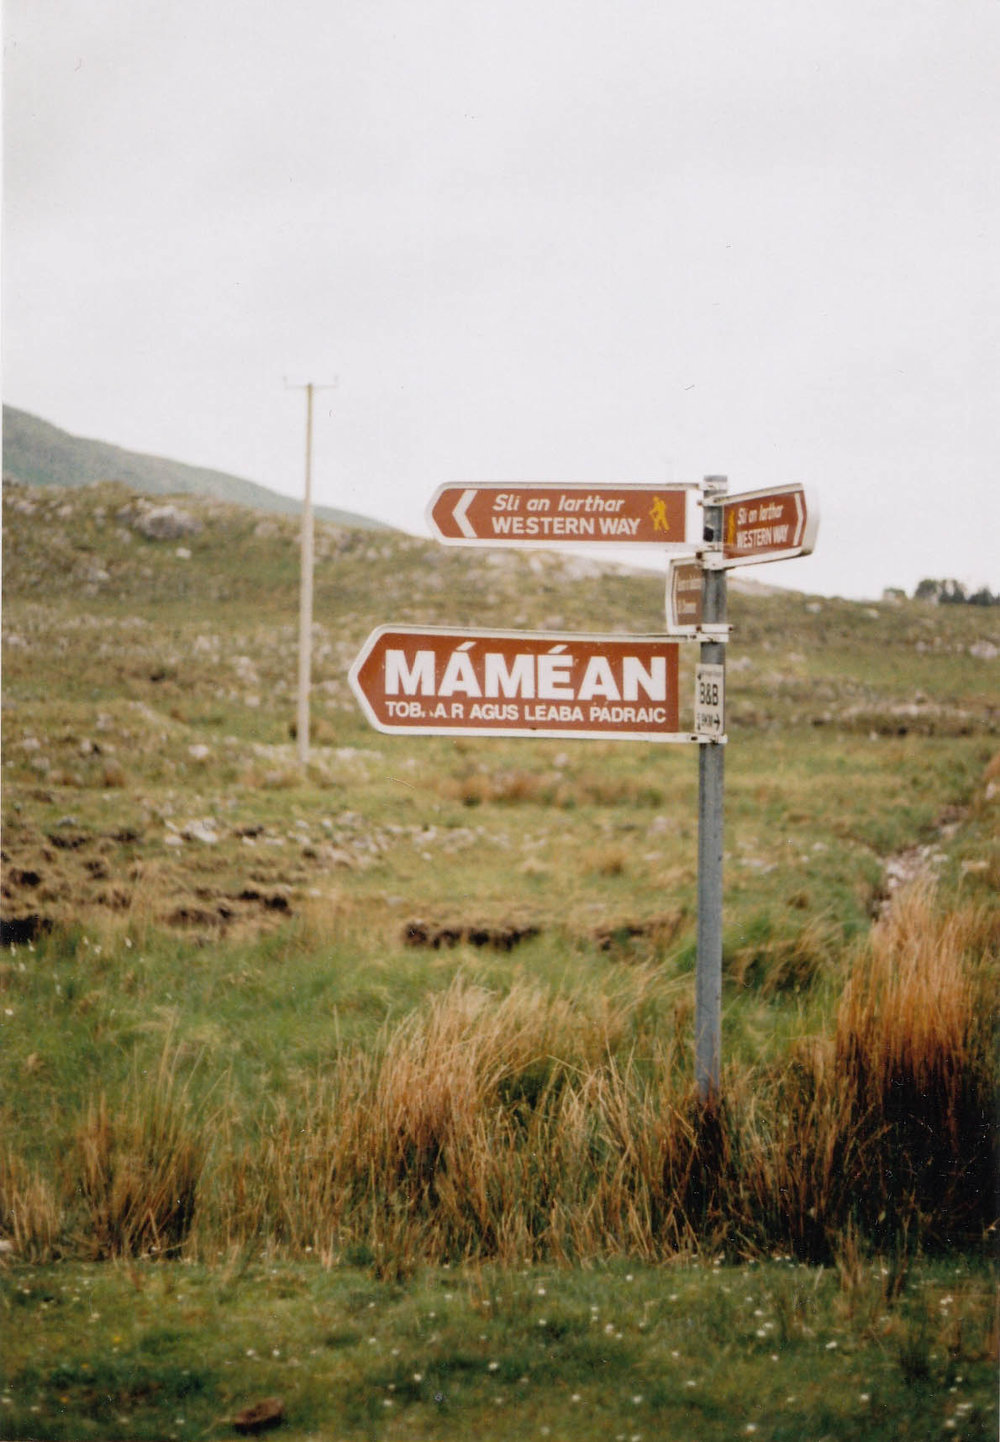 connemara, meamean sign.jpg